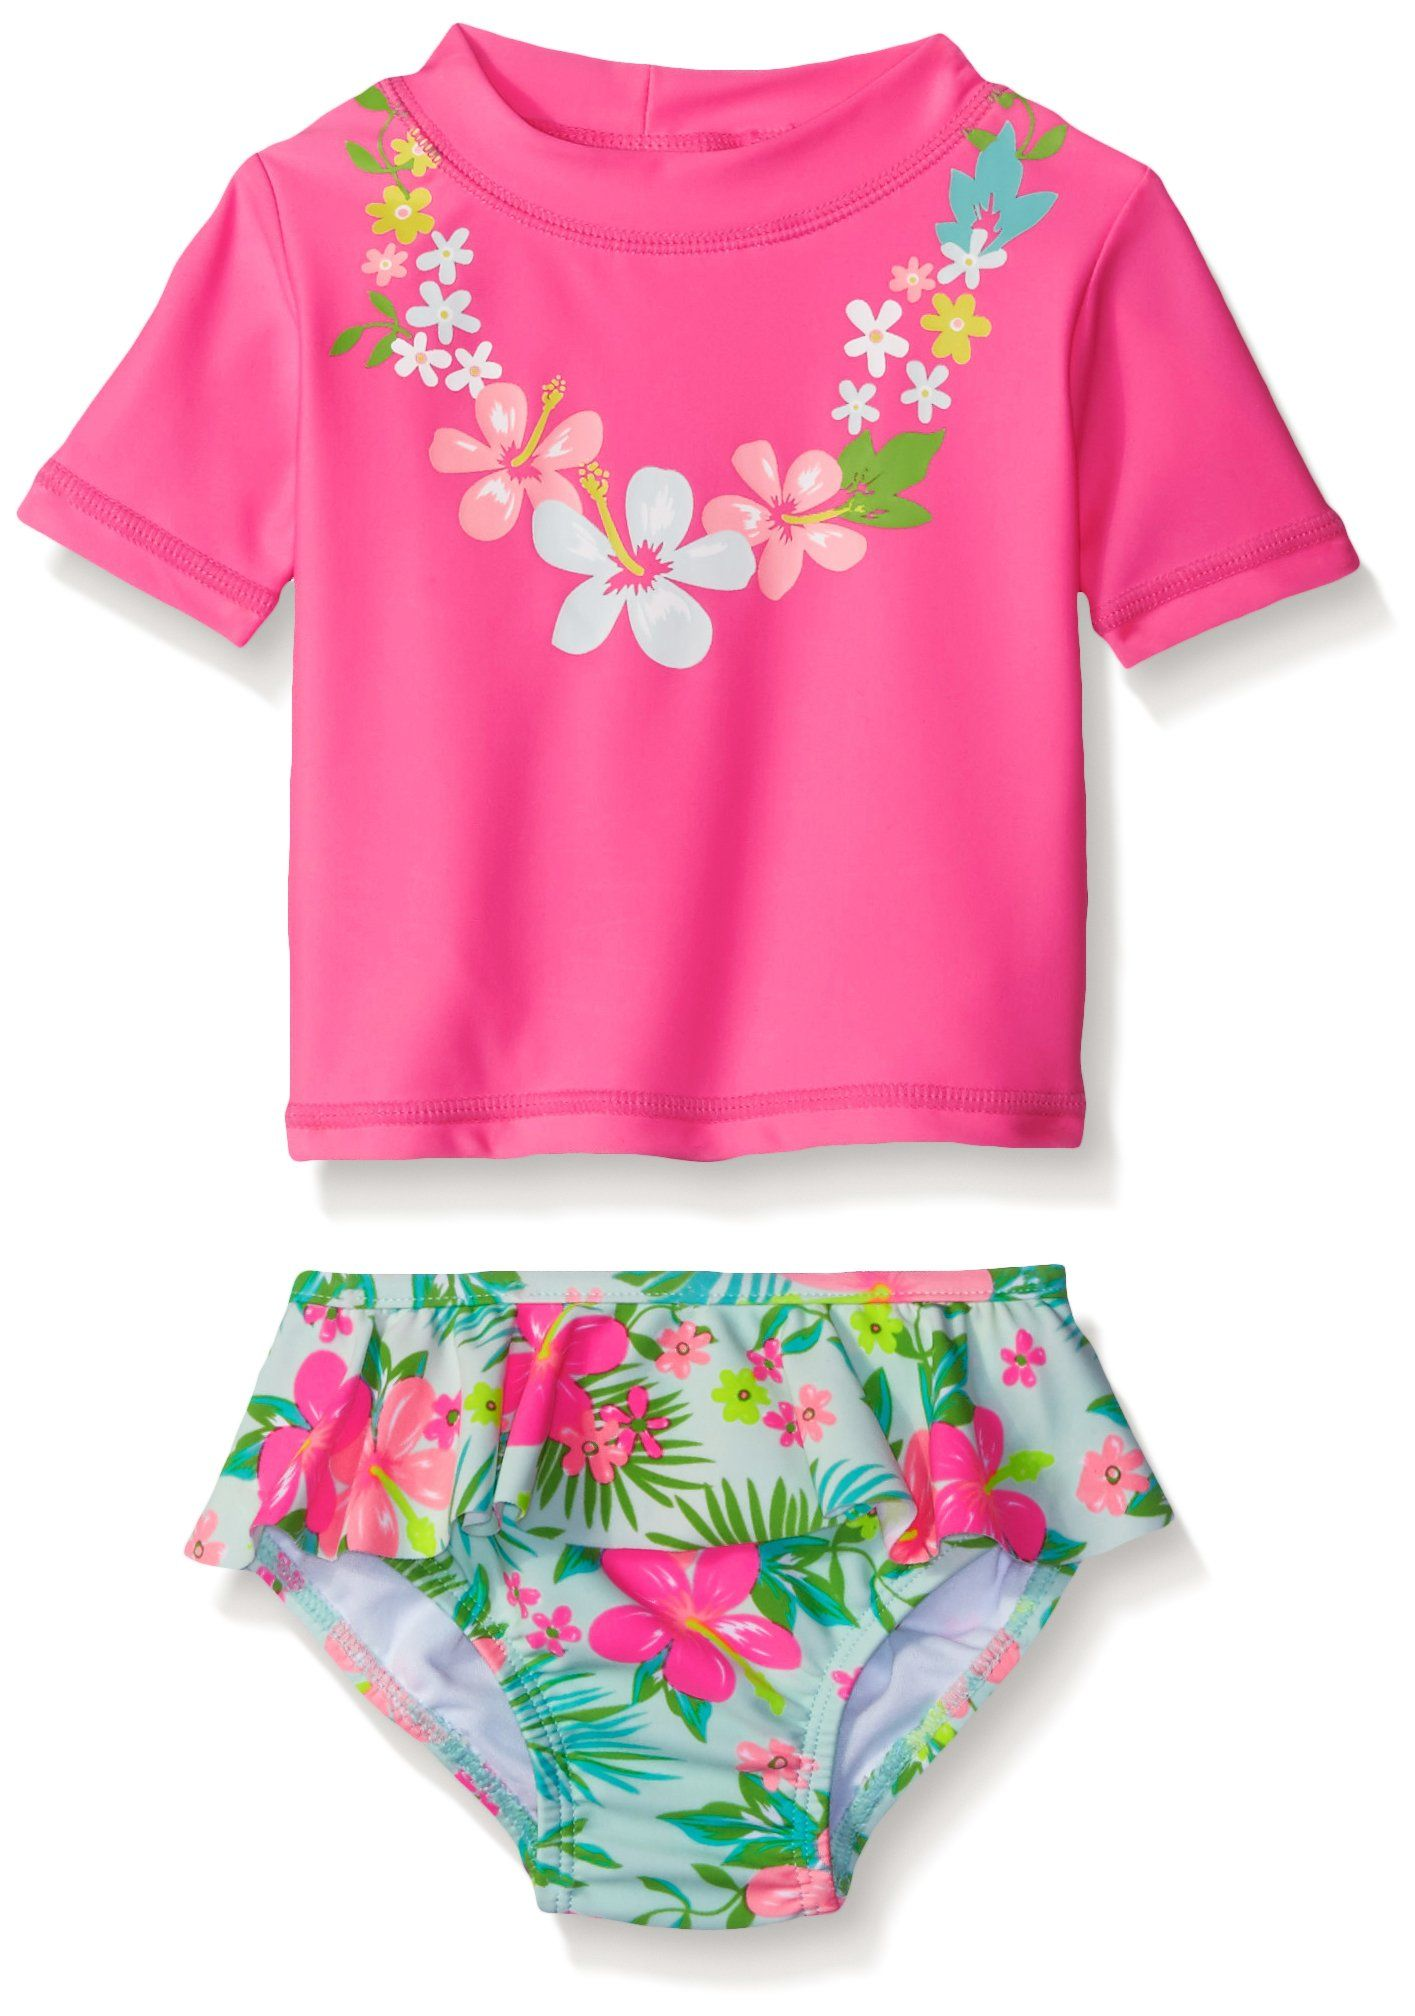 Carter S Baby Girls Short Sleeve Rash Guard Set With Ruffle Skirted Bottom Details Can Be Found By Girls Rash Guard Set Carters Baby Girl Baby Girl Shorts